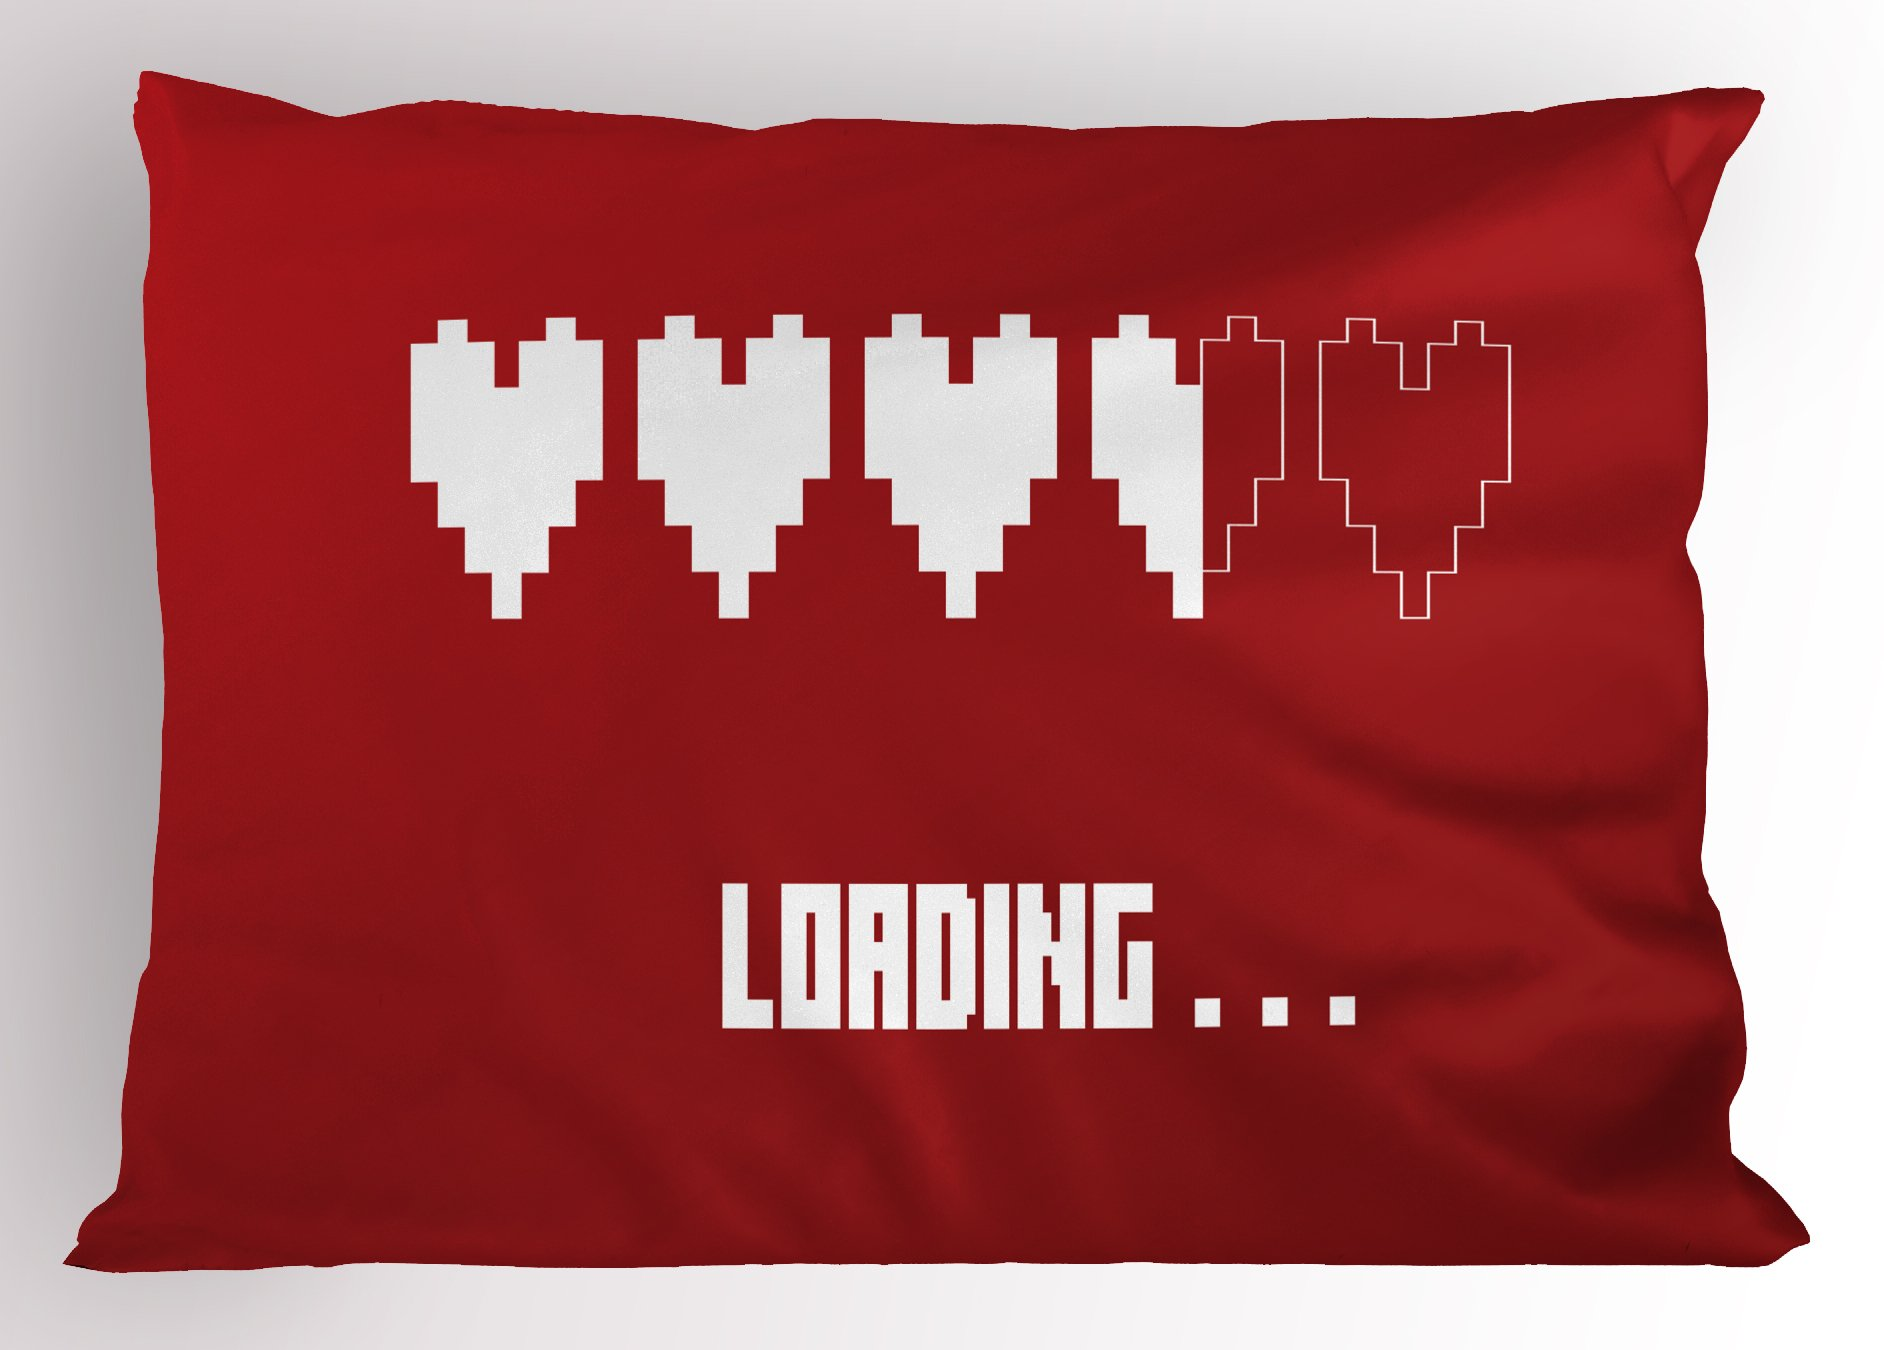 Ambesonne Romantic Pillow Sham, Love Loading Progress Bar with Valentine's Heart Shapes Video Games Illustration, Decorative Standard King Size Printed Pillowcase, 36 X 20 inches, Red White